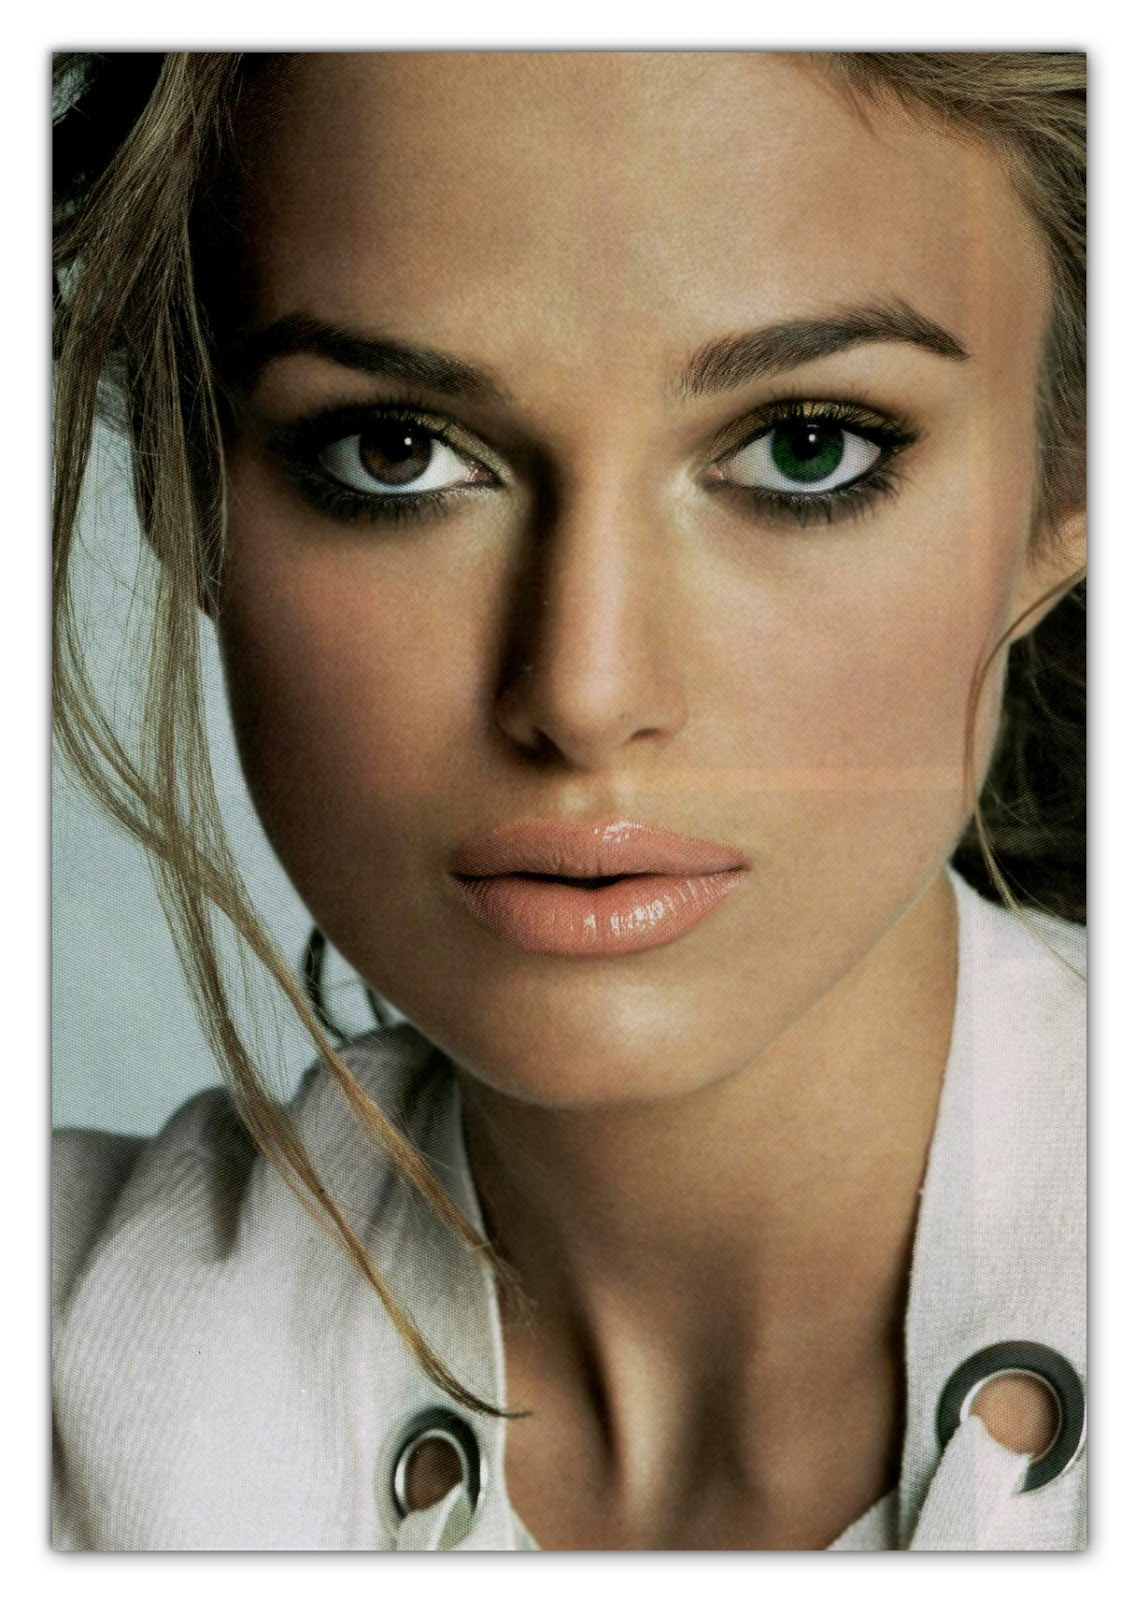 Keira Knightley Keira Knightley Images-7464